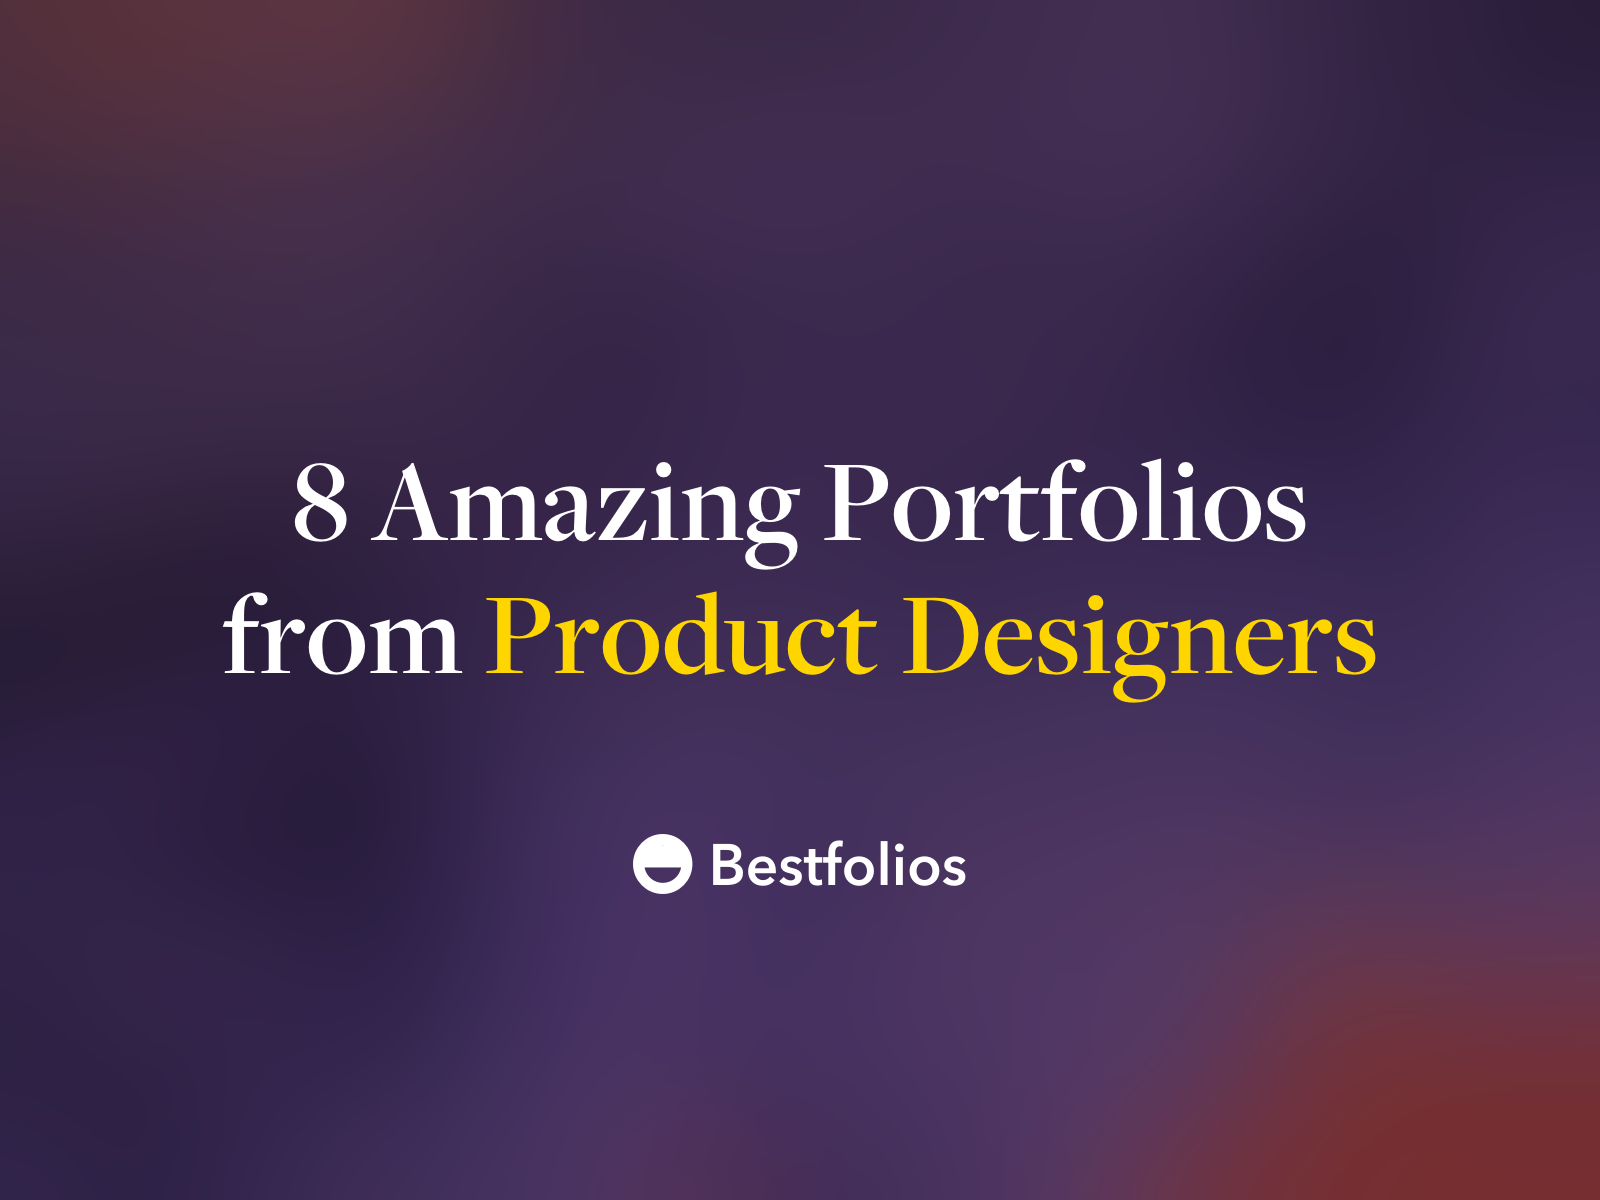 Bestfolios - UI/UX Design Portfolio Inspiration and Showcase